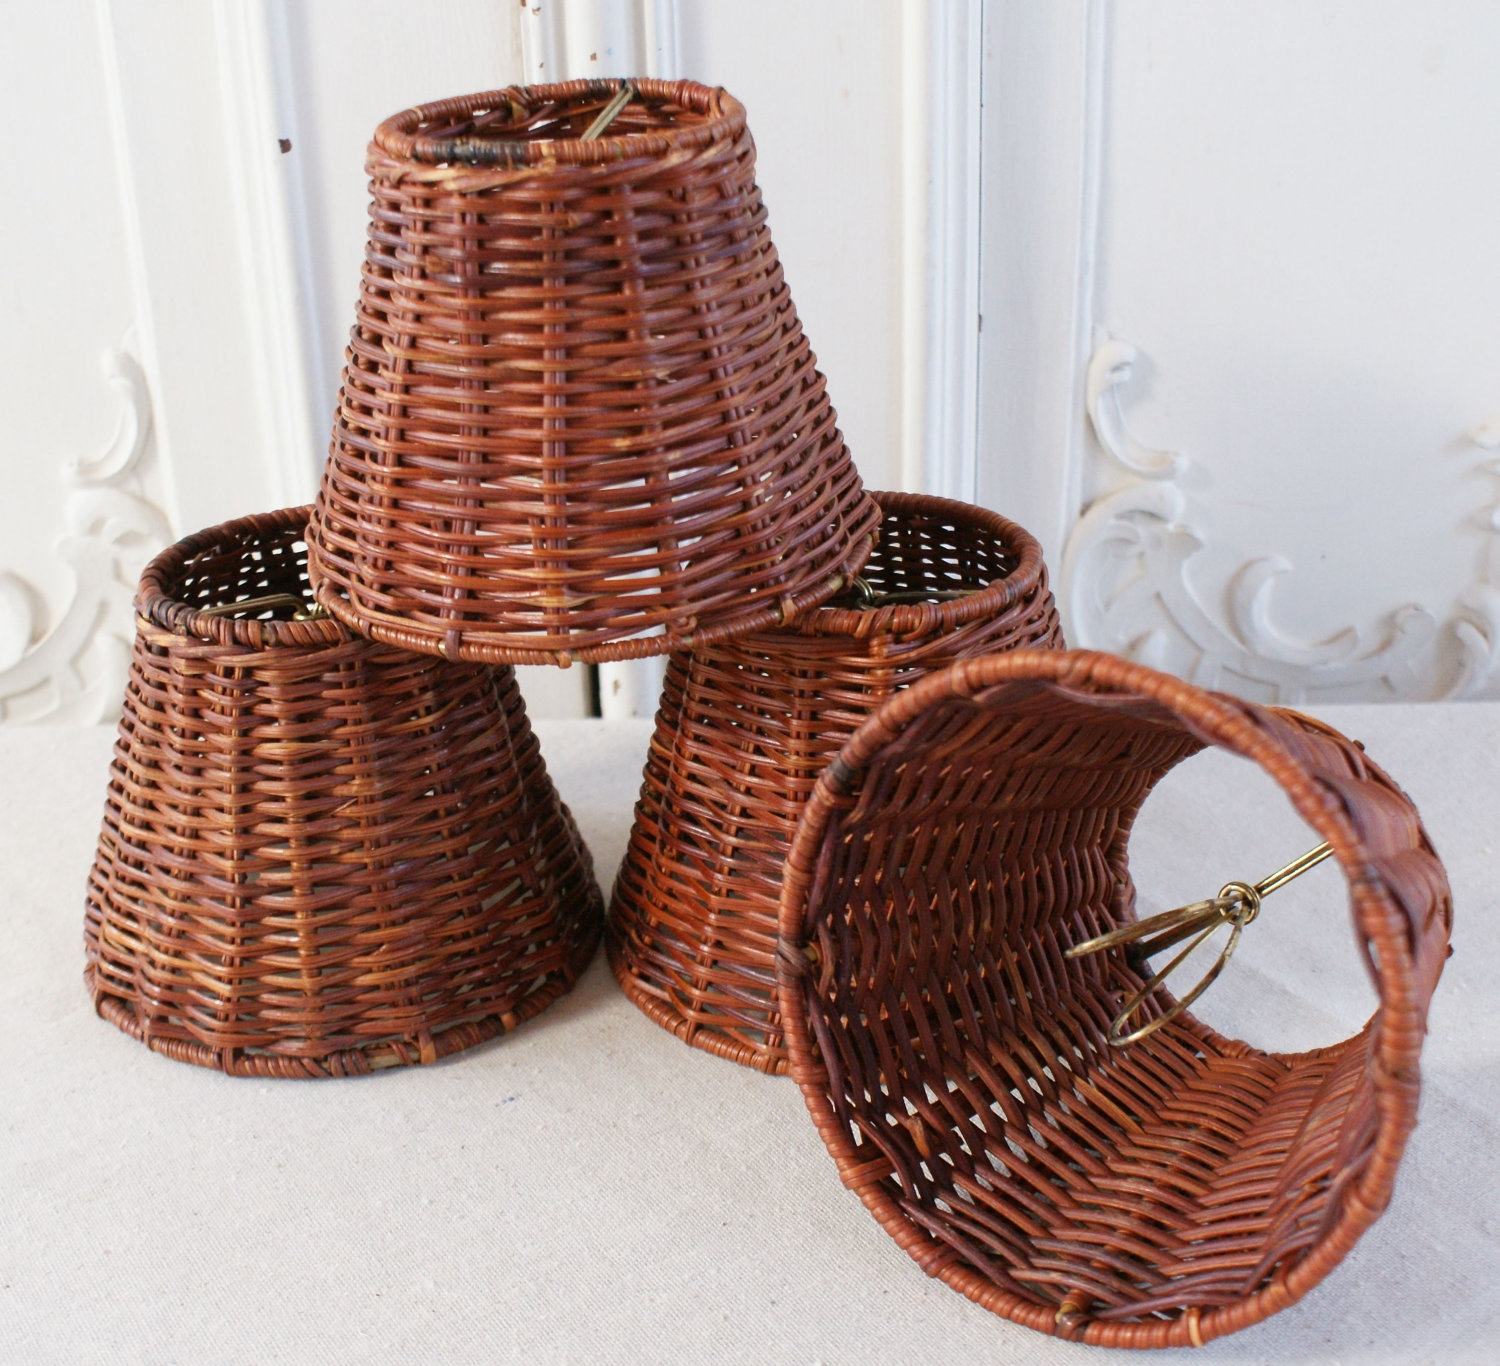 Wicker Chandelier With Lamp Shades Very Awesome Lamp Shade For Chandelier Lamp Shades (Image 25 of 25)